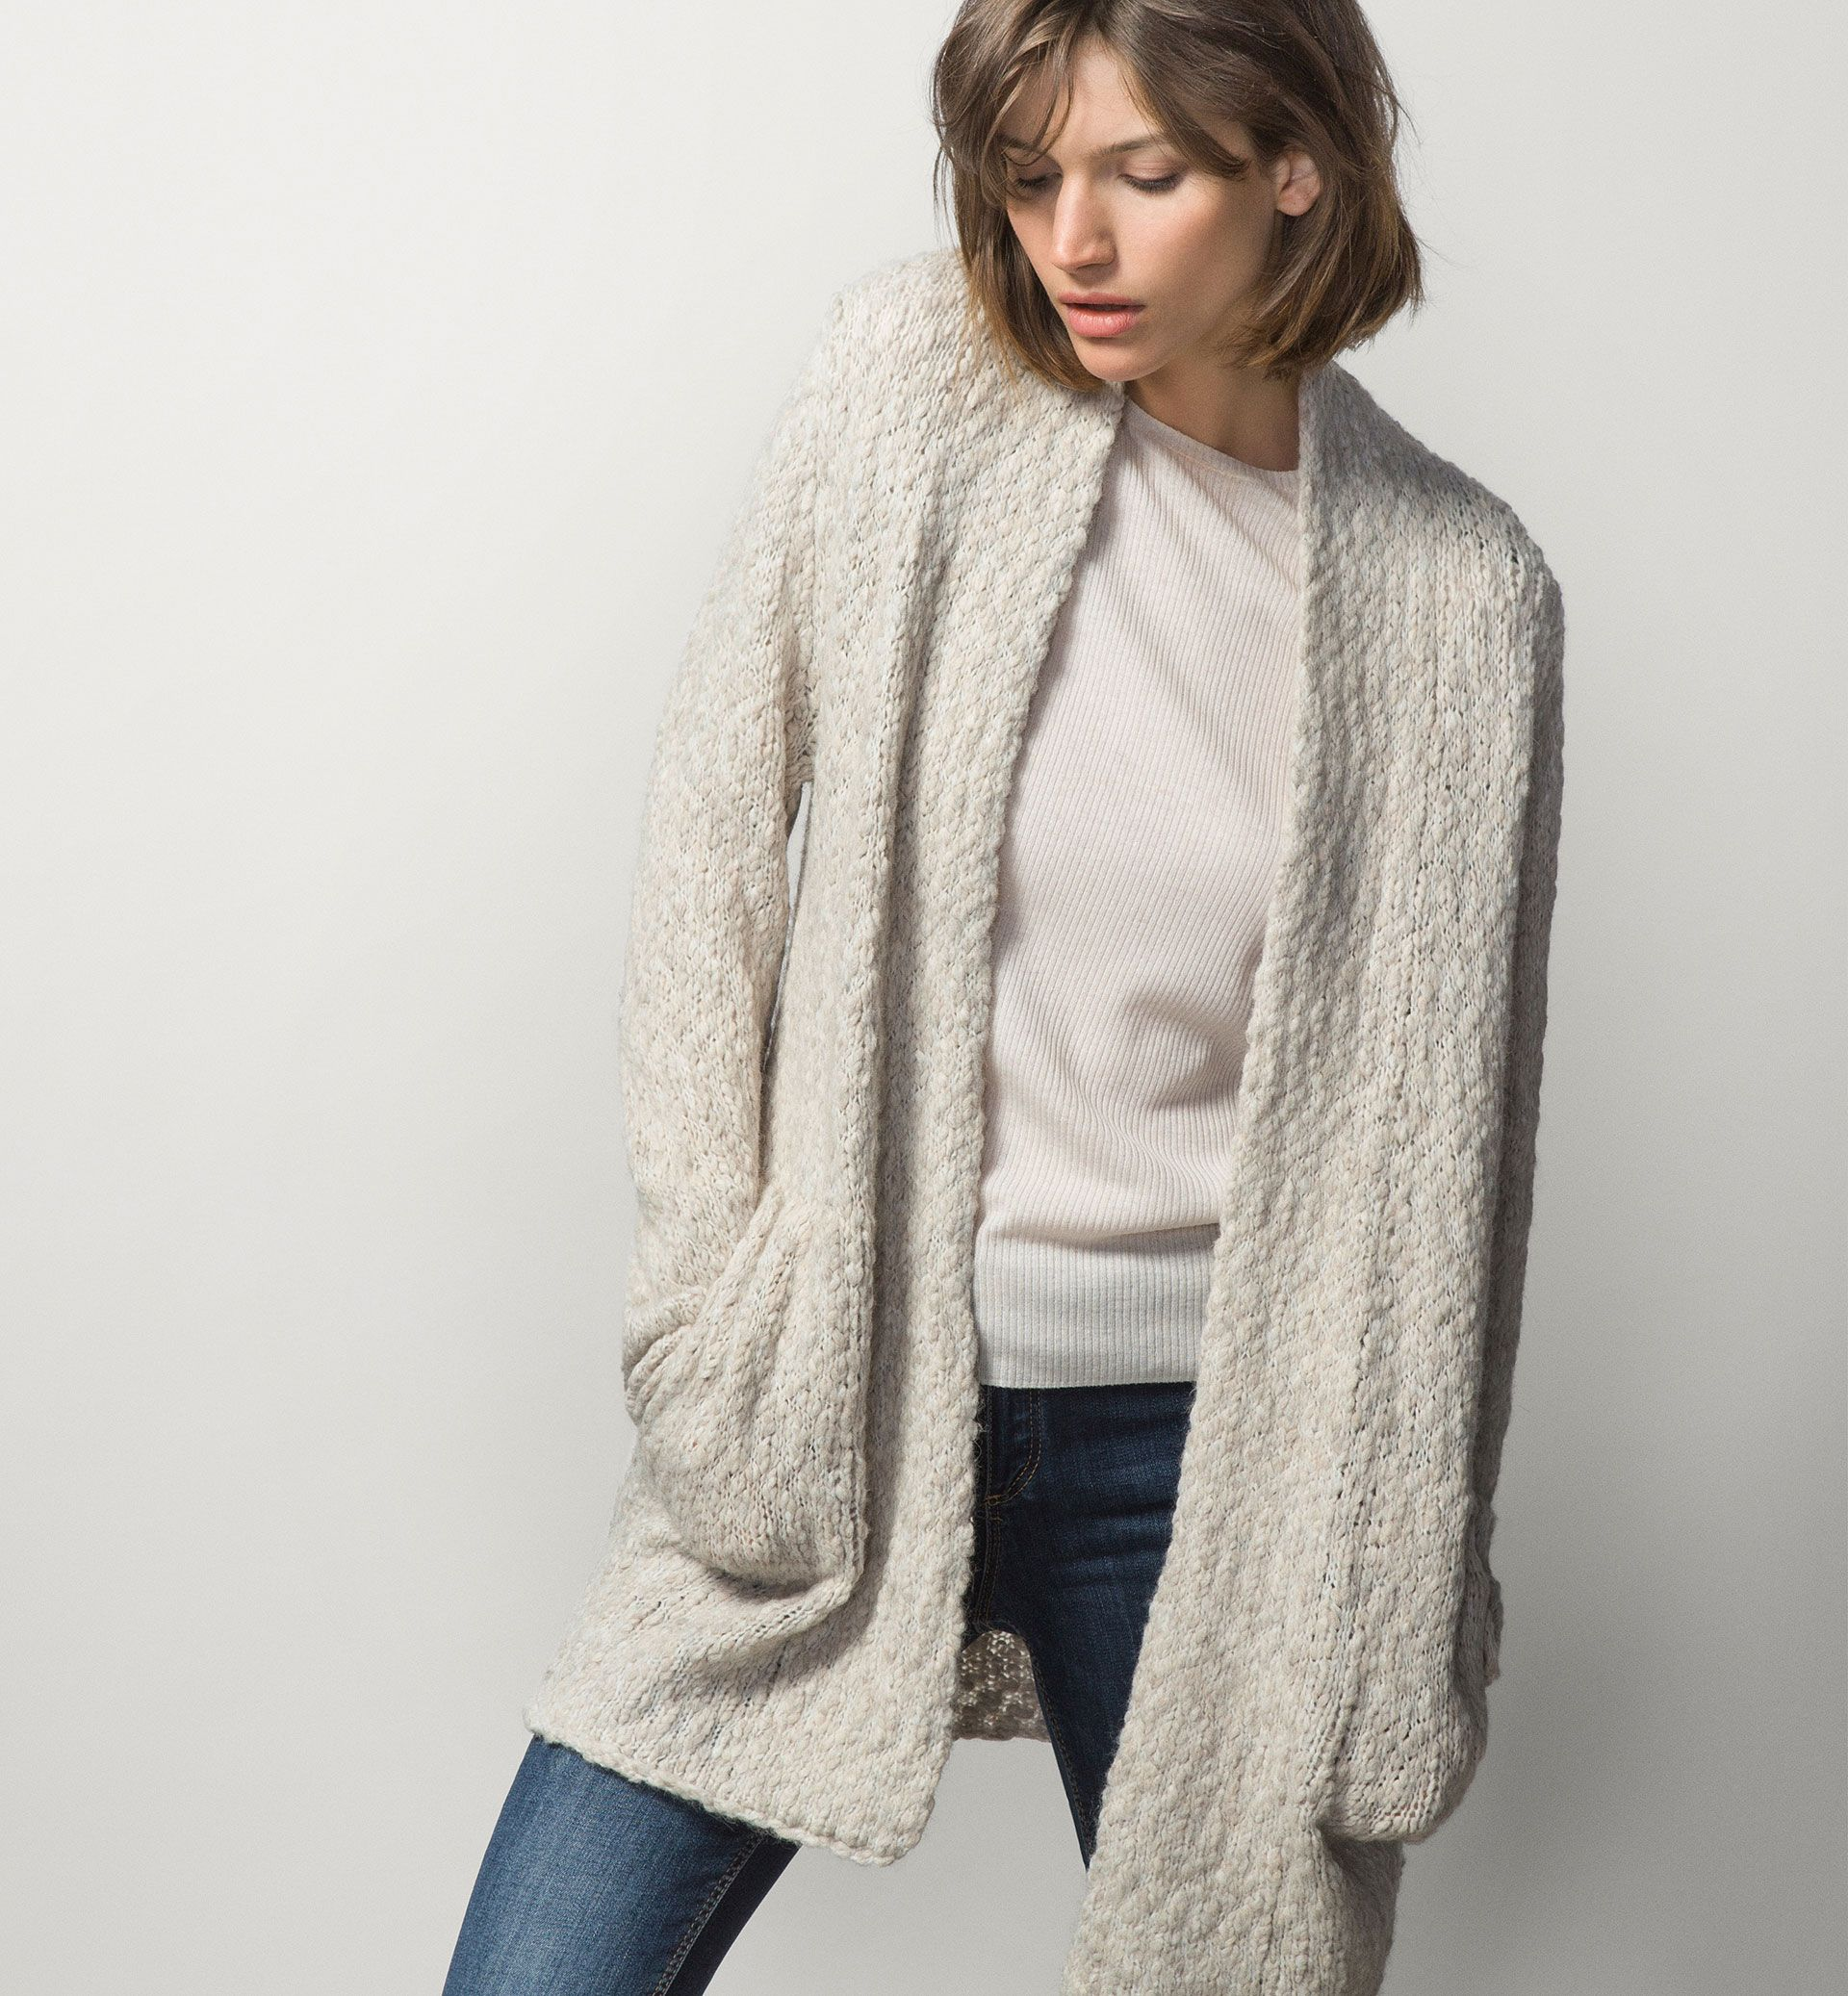 LONG CARDIGAN WITH POCKETS | Style | Pinterest | Long cardigan and ...